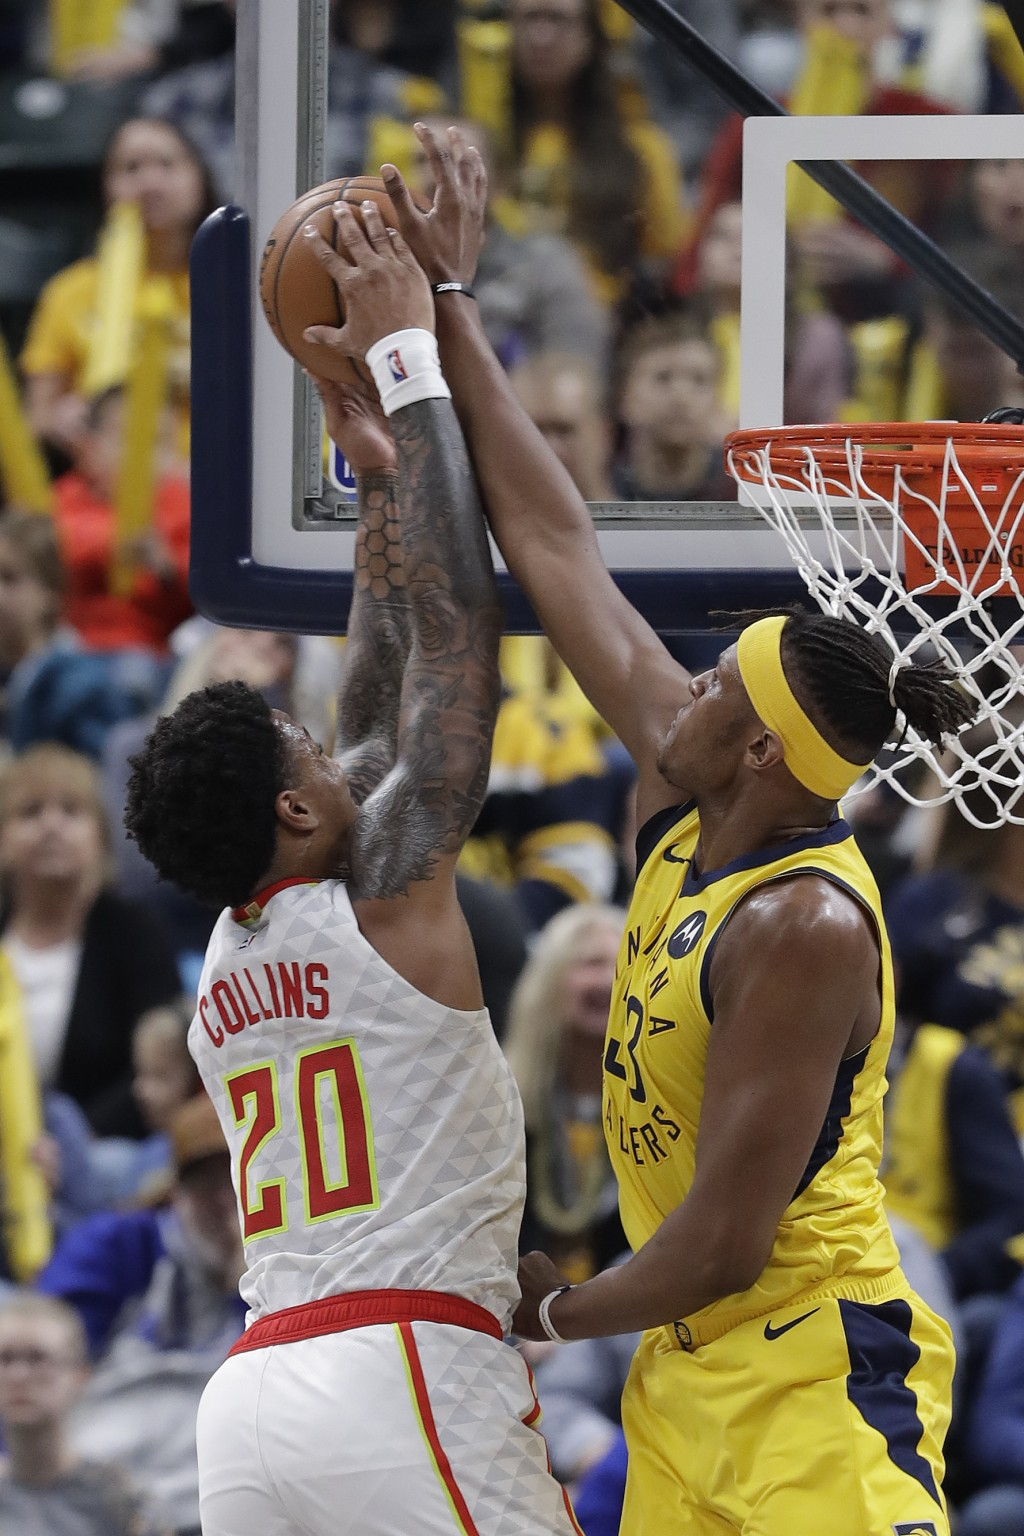 Atlanta Hawks' John Collins (20) goes up for a dunk against Indiana Pacers' Myles Turner (33) during the second half of an NBA basketball game, Monday